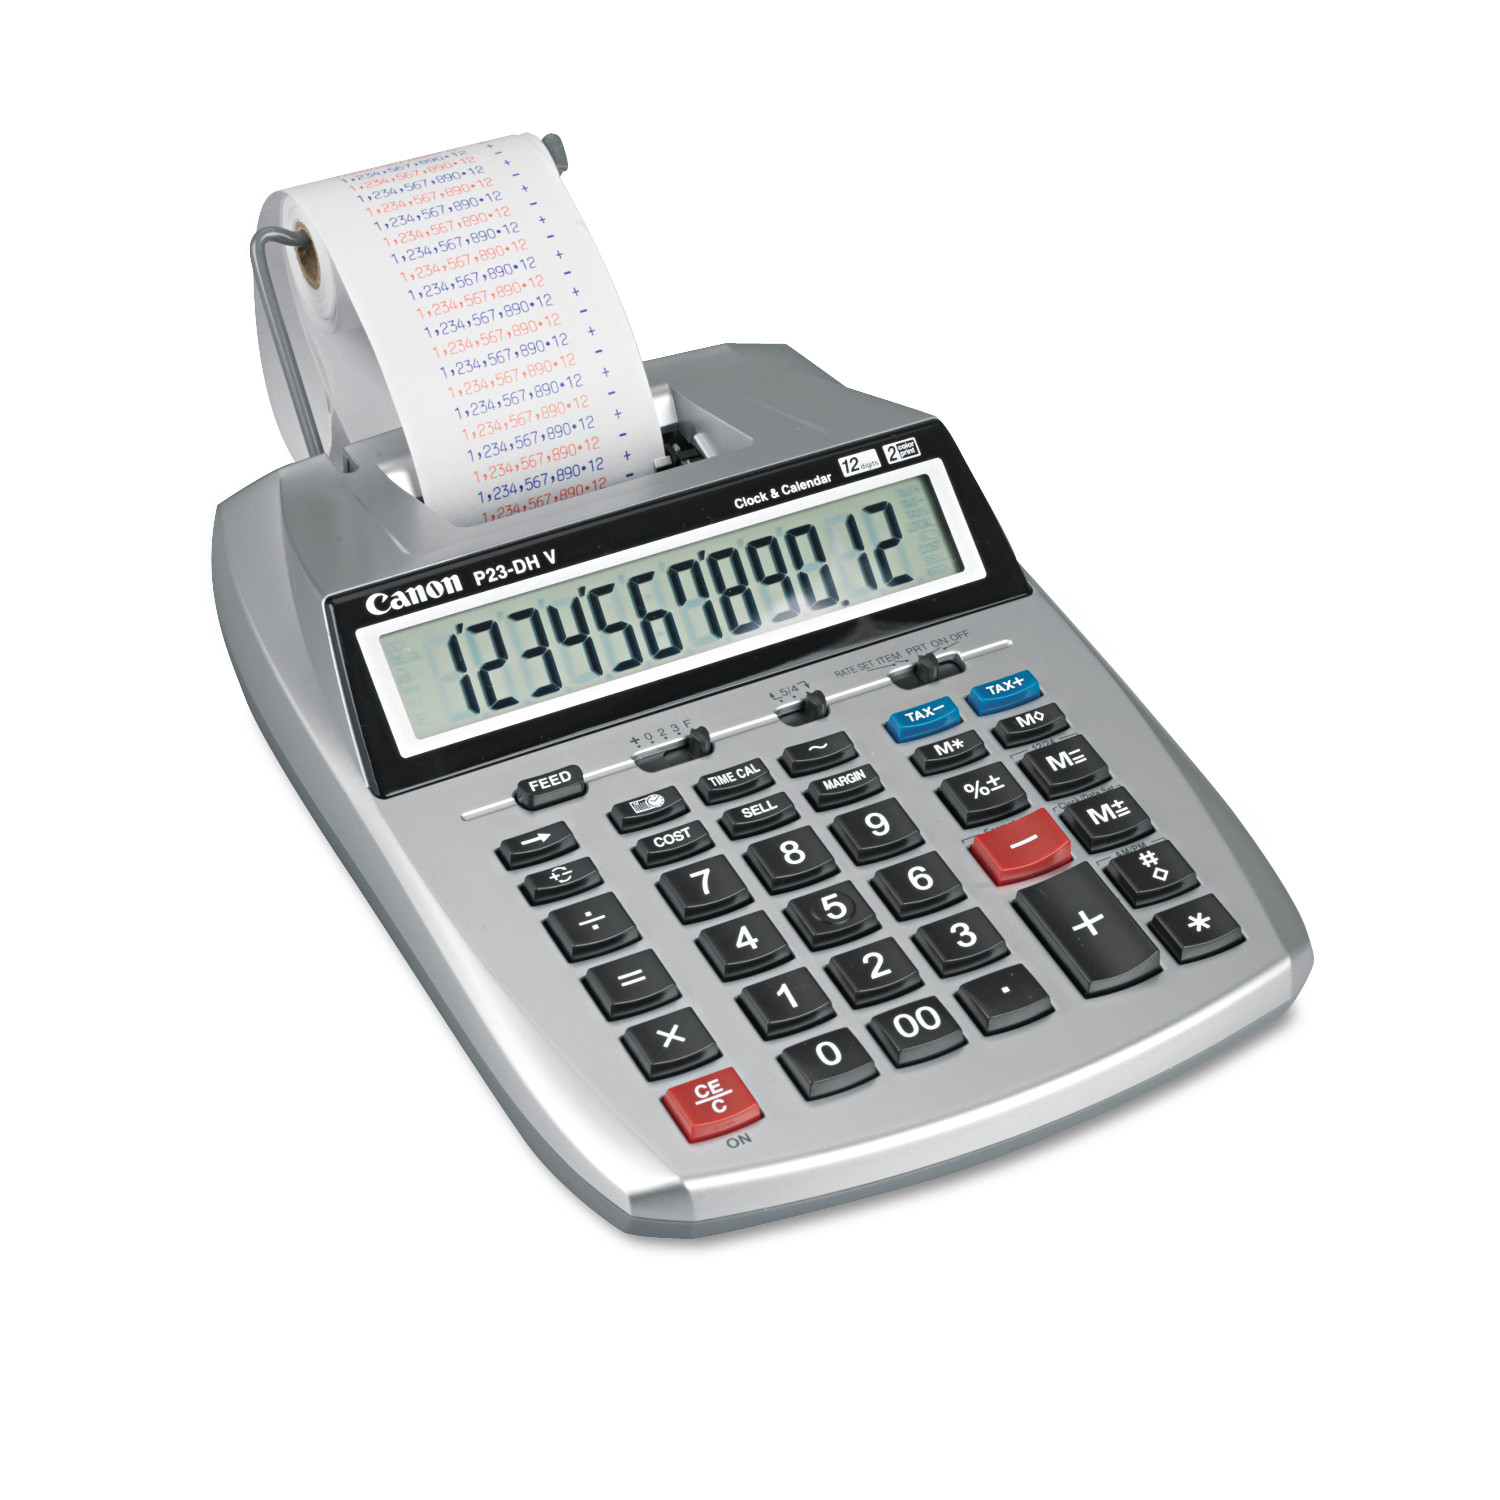 Canon P23-DHV 12-Digit Printing Calculator, Purple/Red Print, 2.3 Lines/Sec